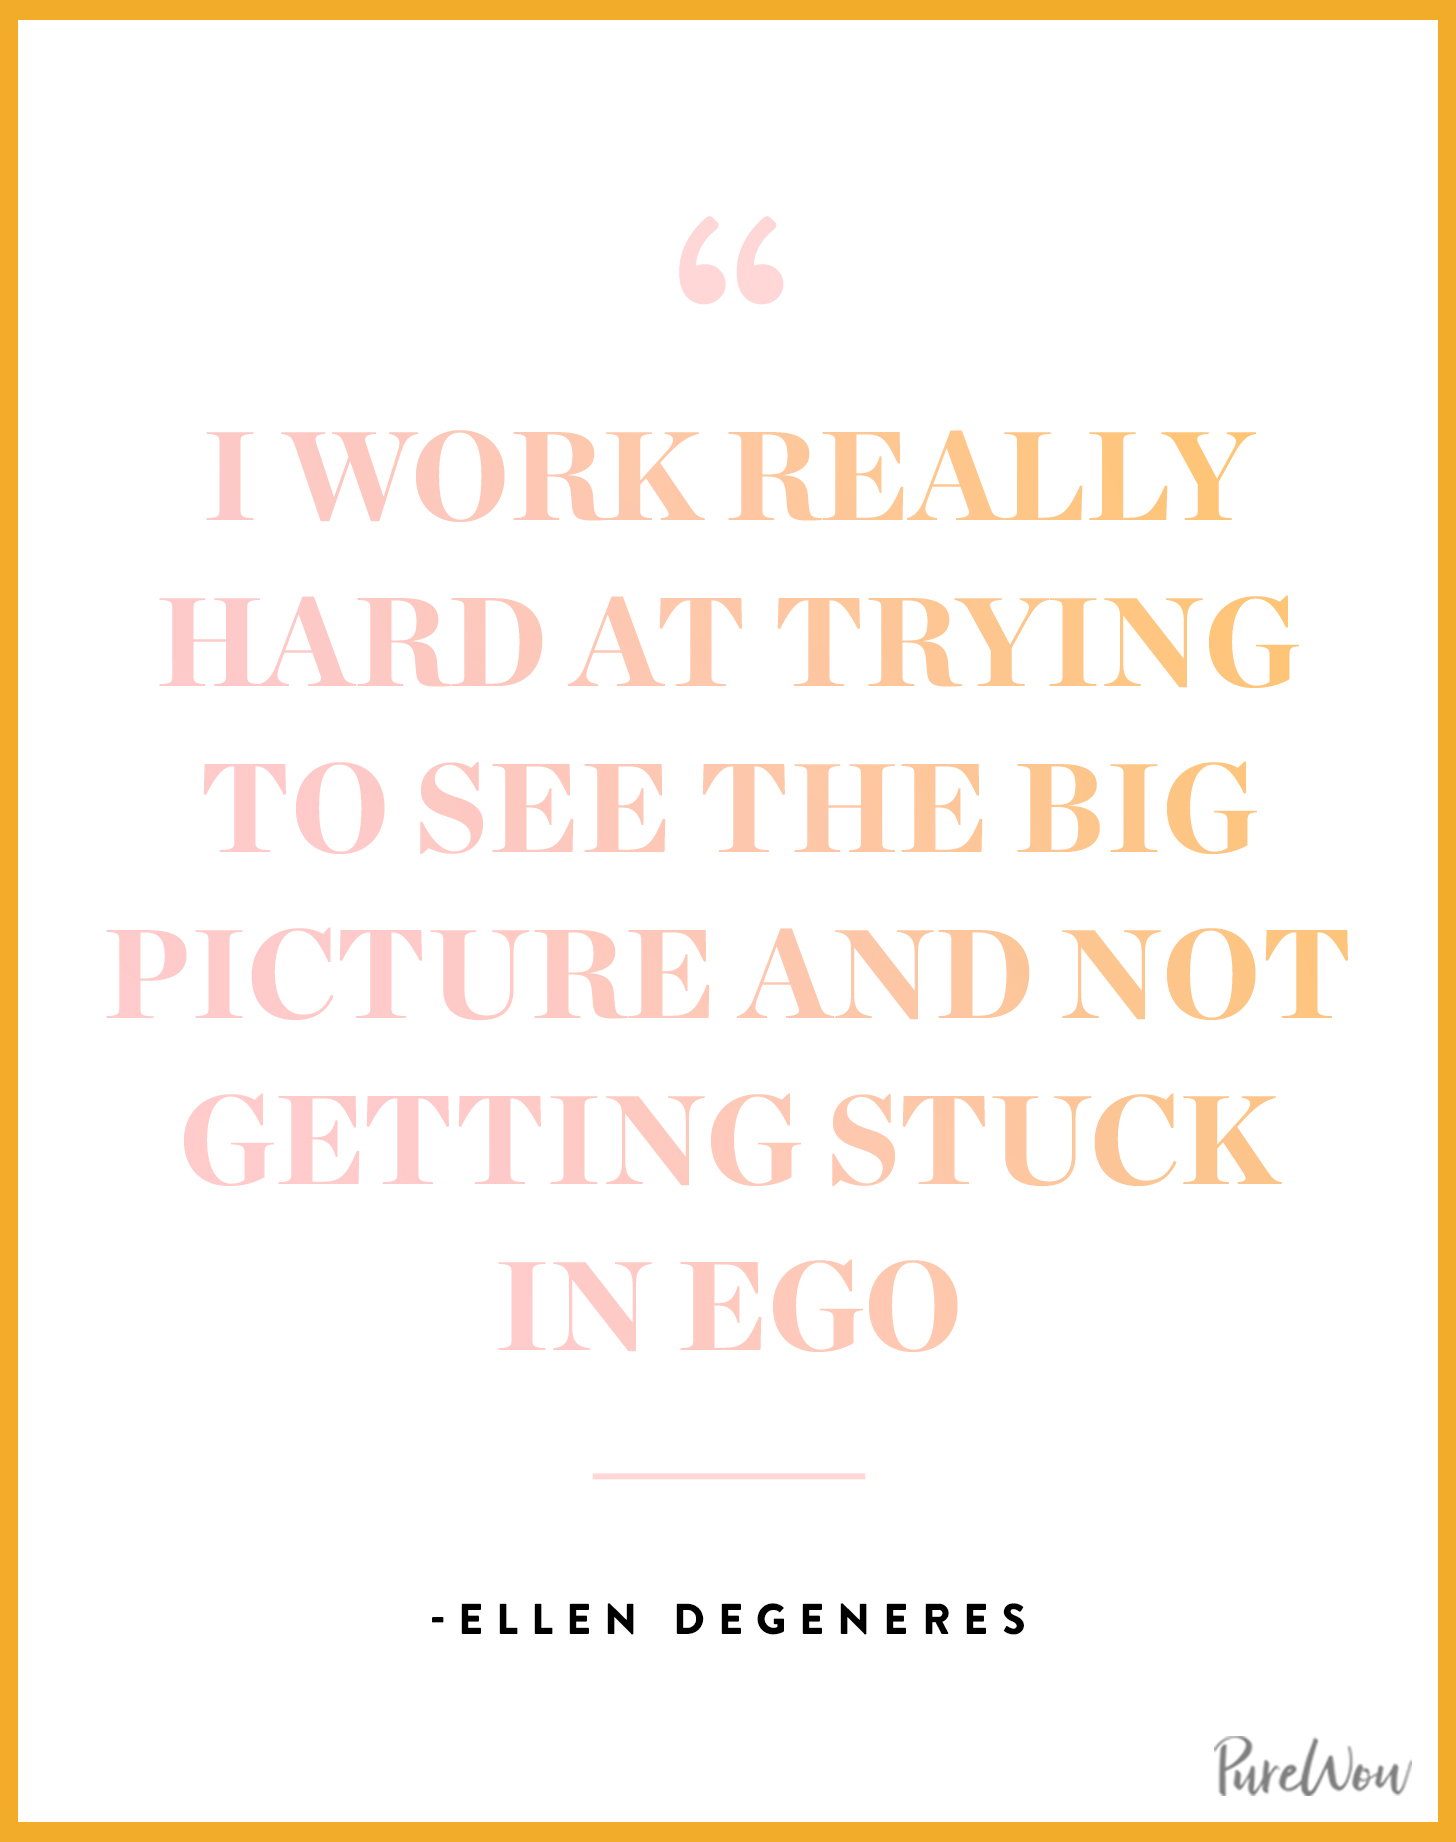 ellen degeneres quotes to make you laugh cry purewow